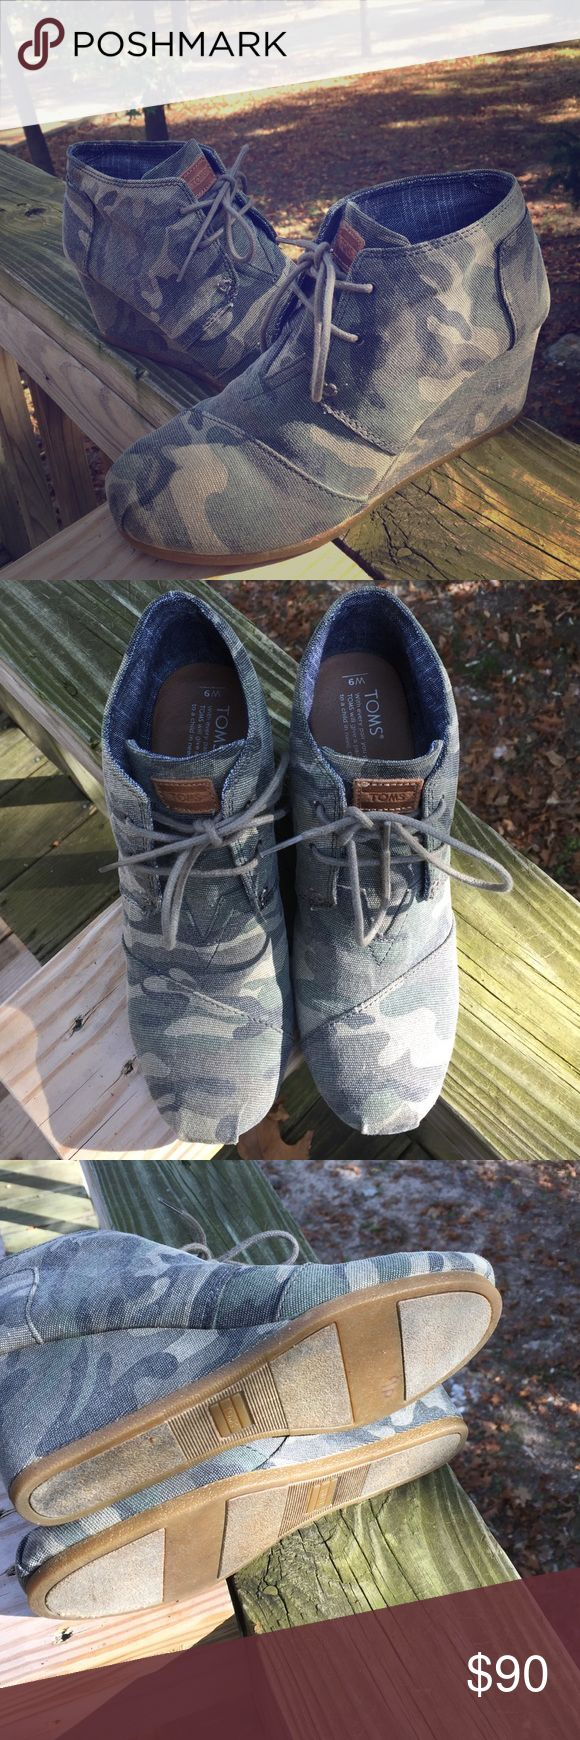 Camo TOMS Wedge Booties size 9 Practically brand new, worn one time. I just needed a different size. These are sold out most places! Excellent condition. No signs of wear! Please ask any questions :) TOMS Shoes Ankle Boots & Booties